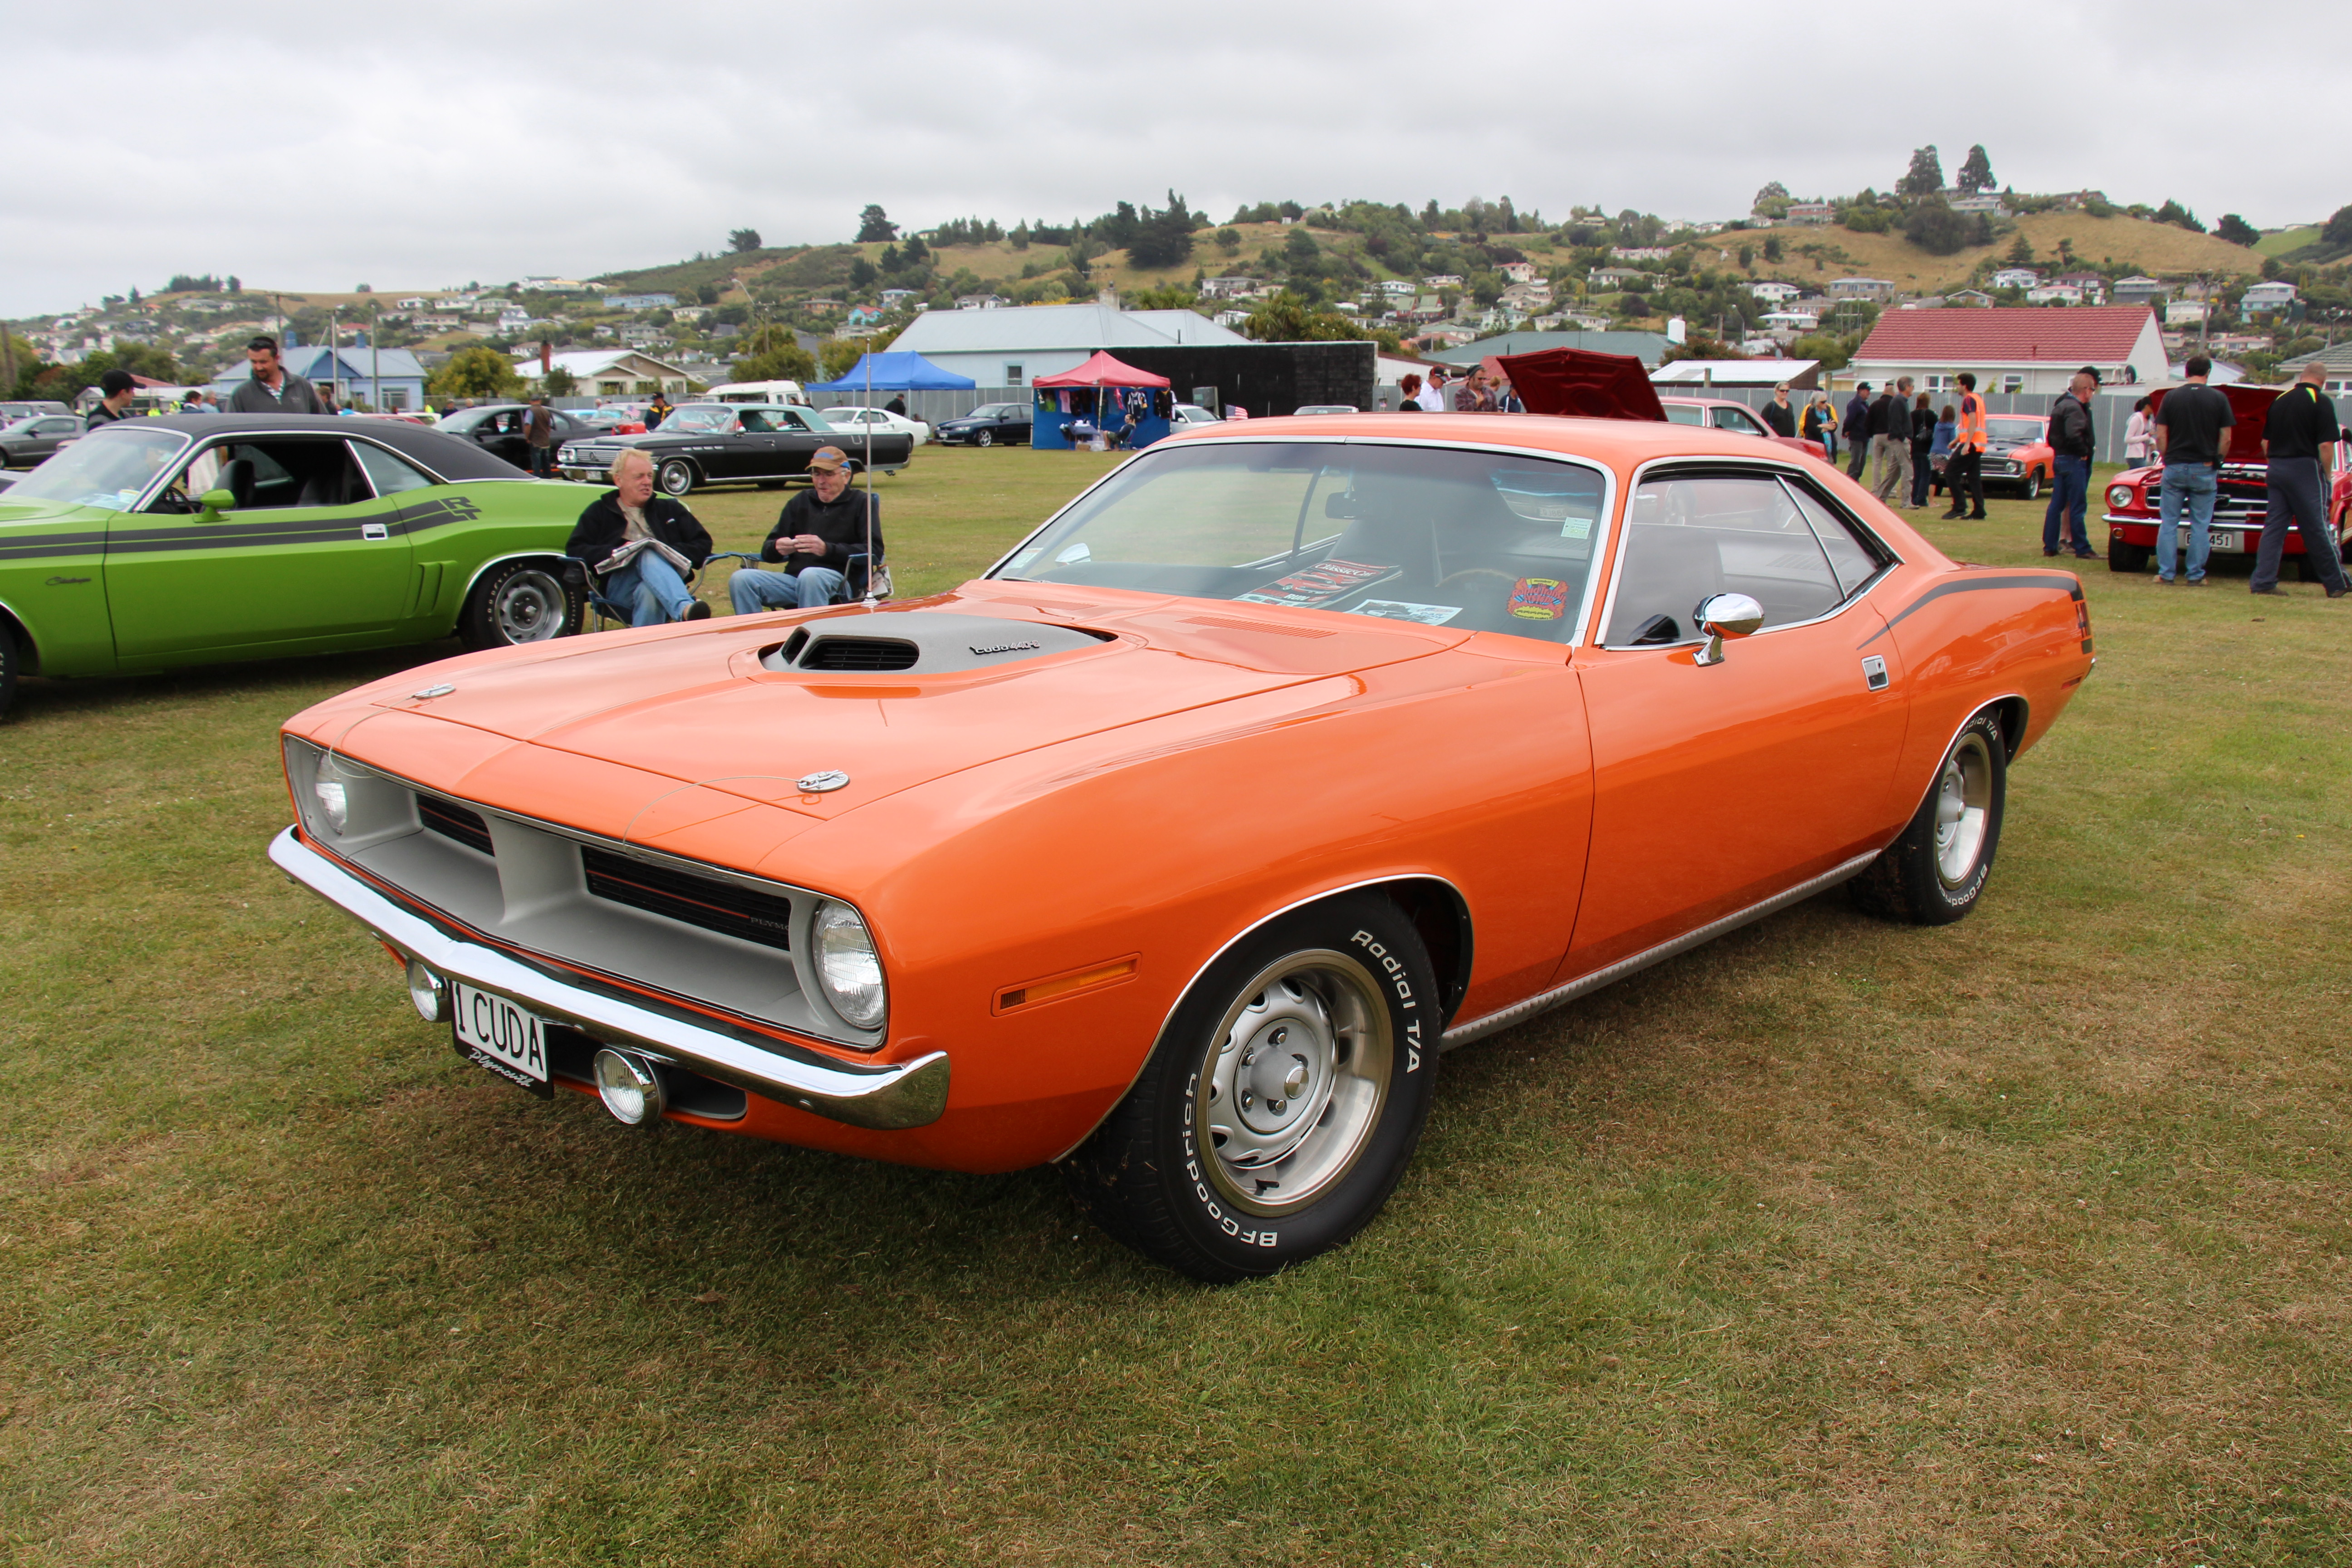 Dodge Challenger 1970 >> File:1970 Plymouth Barracuda Cuda 440-6 (12628415093).jpg - Wikimedia Commons